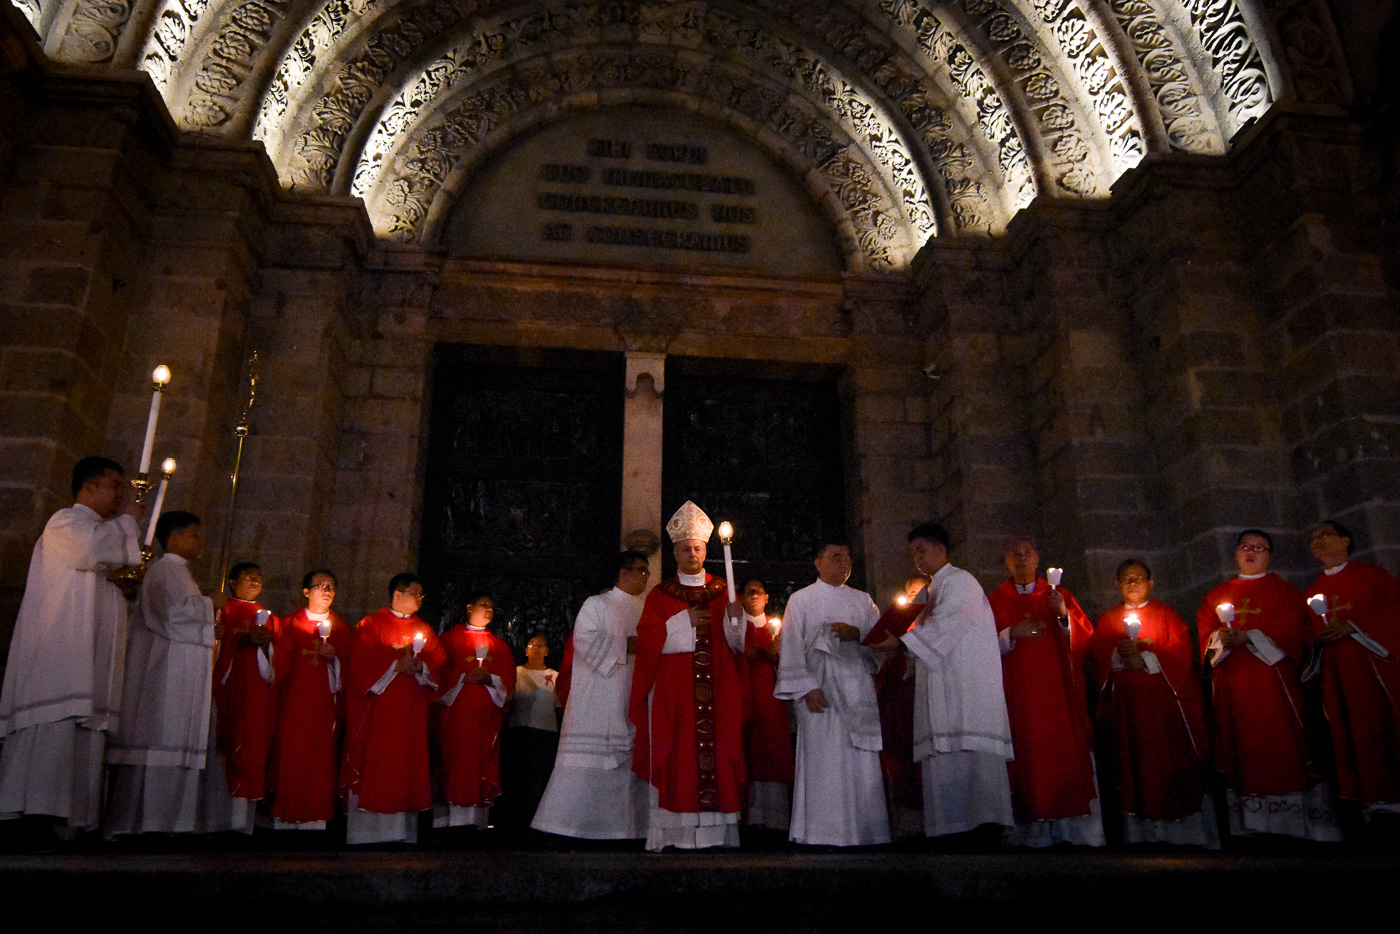 RED WEDNESDAY. Vatican Ambassador to the Philippines Gabriele Giordano Caccia leads the prayers outside the Manila Cathedral for Red Wednesday on November 22, 2017, a day to support persecuted Christians worldwide. Photo by LeAnne Jazul/Rappler